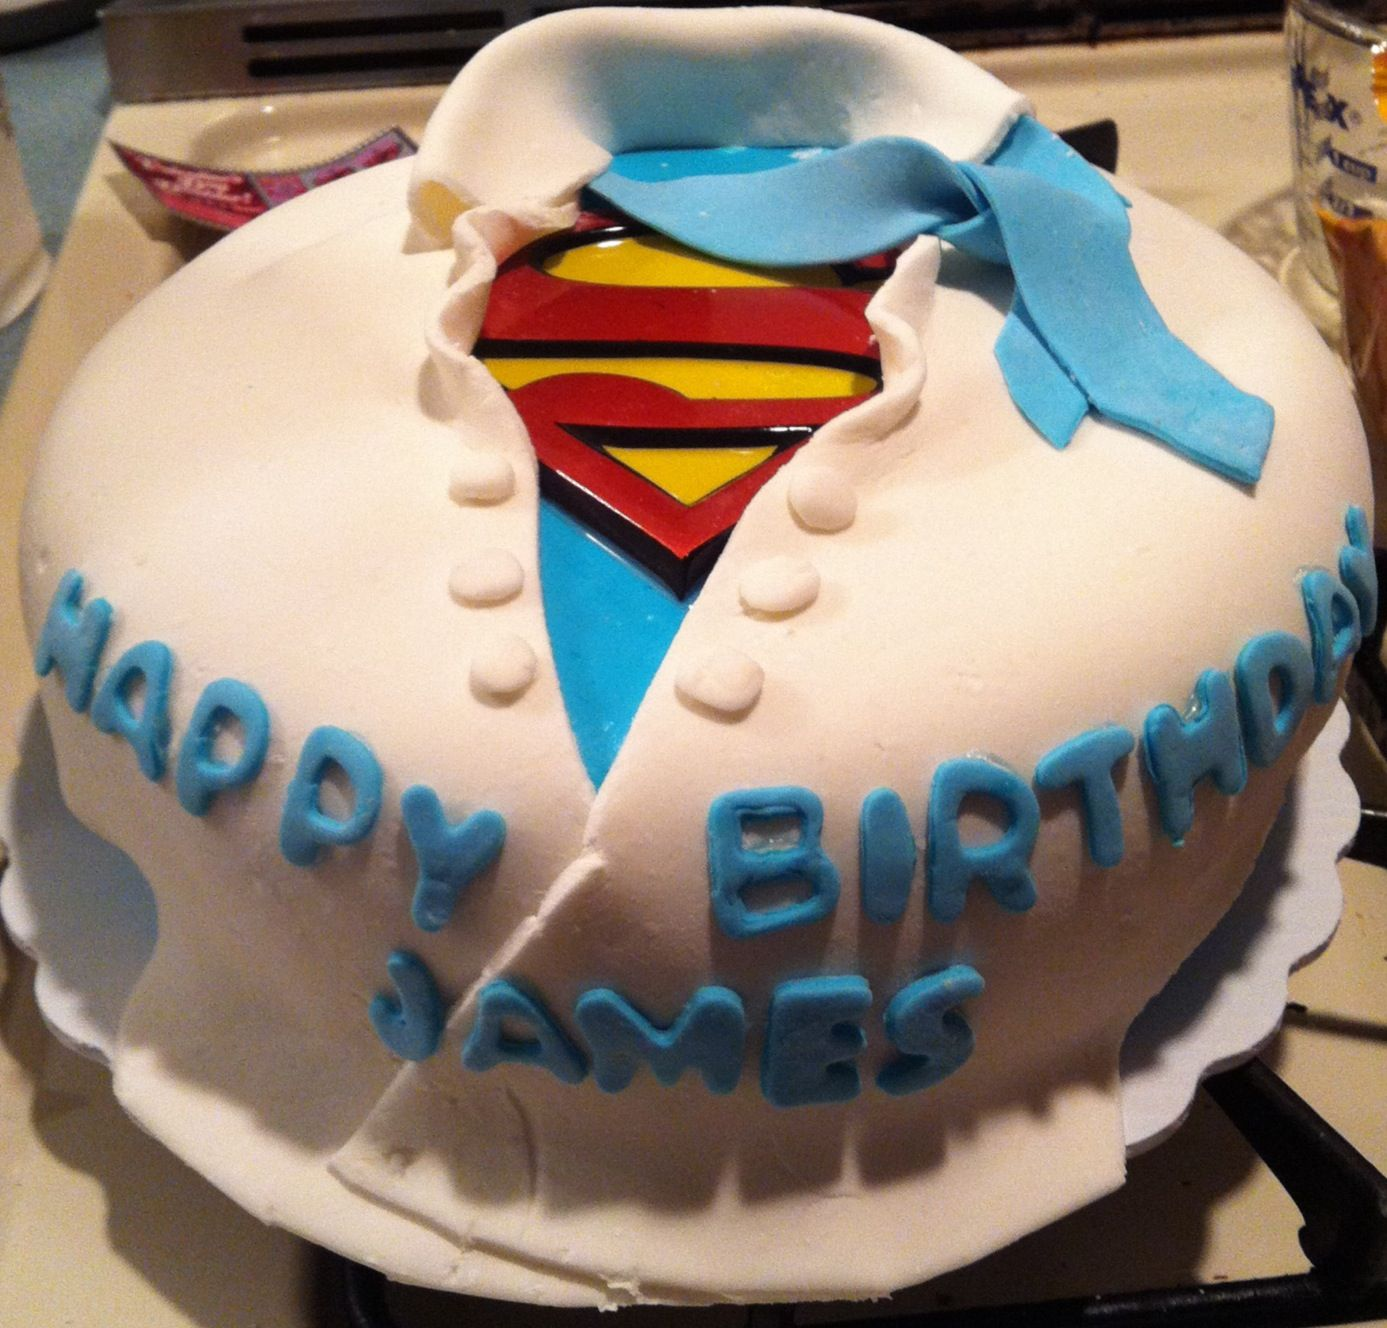 Cake Images For Hubby : My husbands superman cake I made for his birthday Cake ...